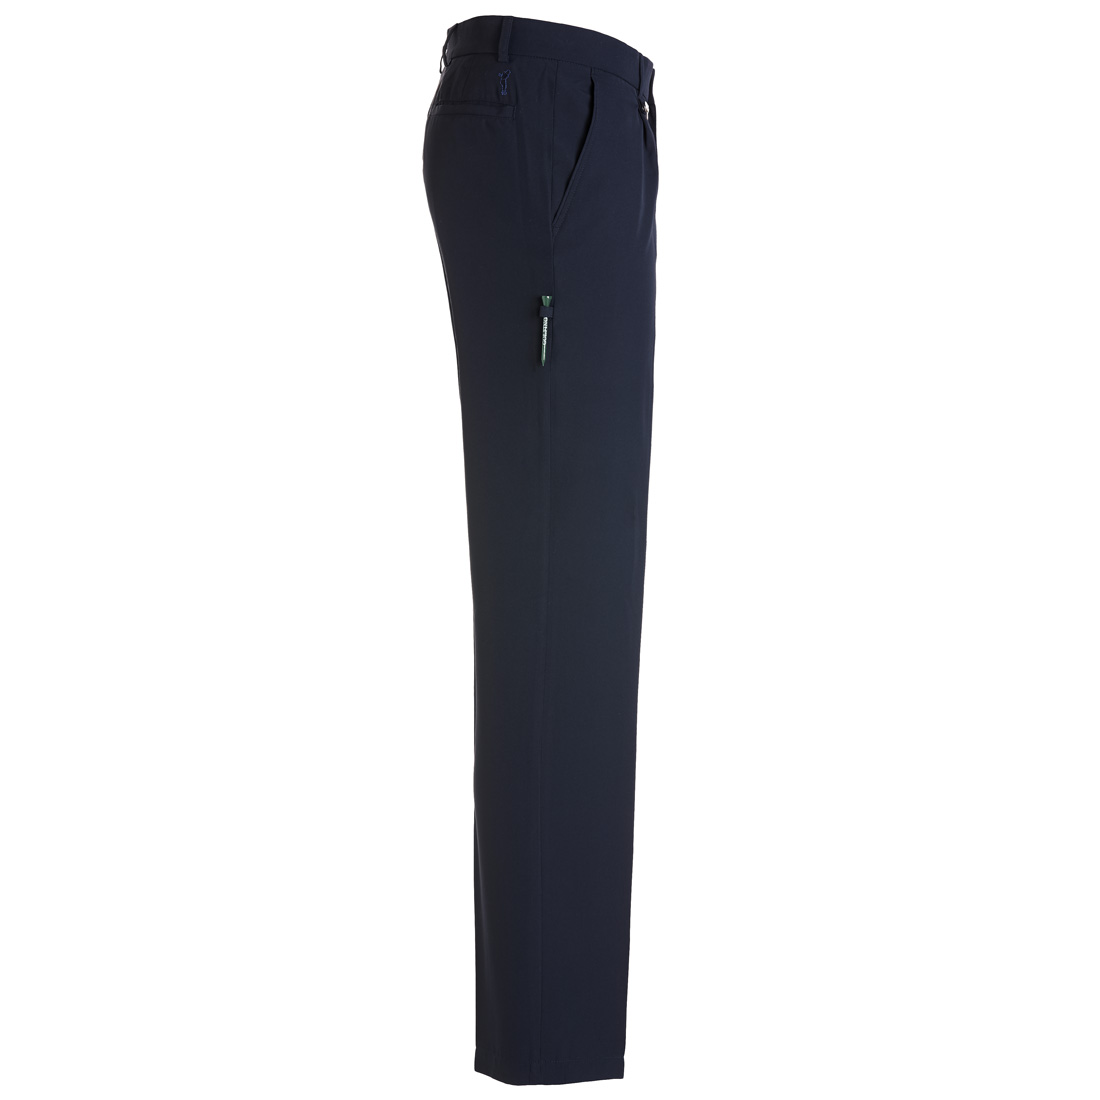 Wasserabweisende Herren Golfhose aus softem Funktionsmaterial in Classic Fit